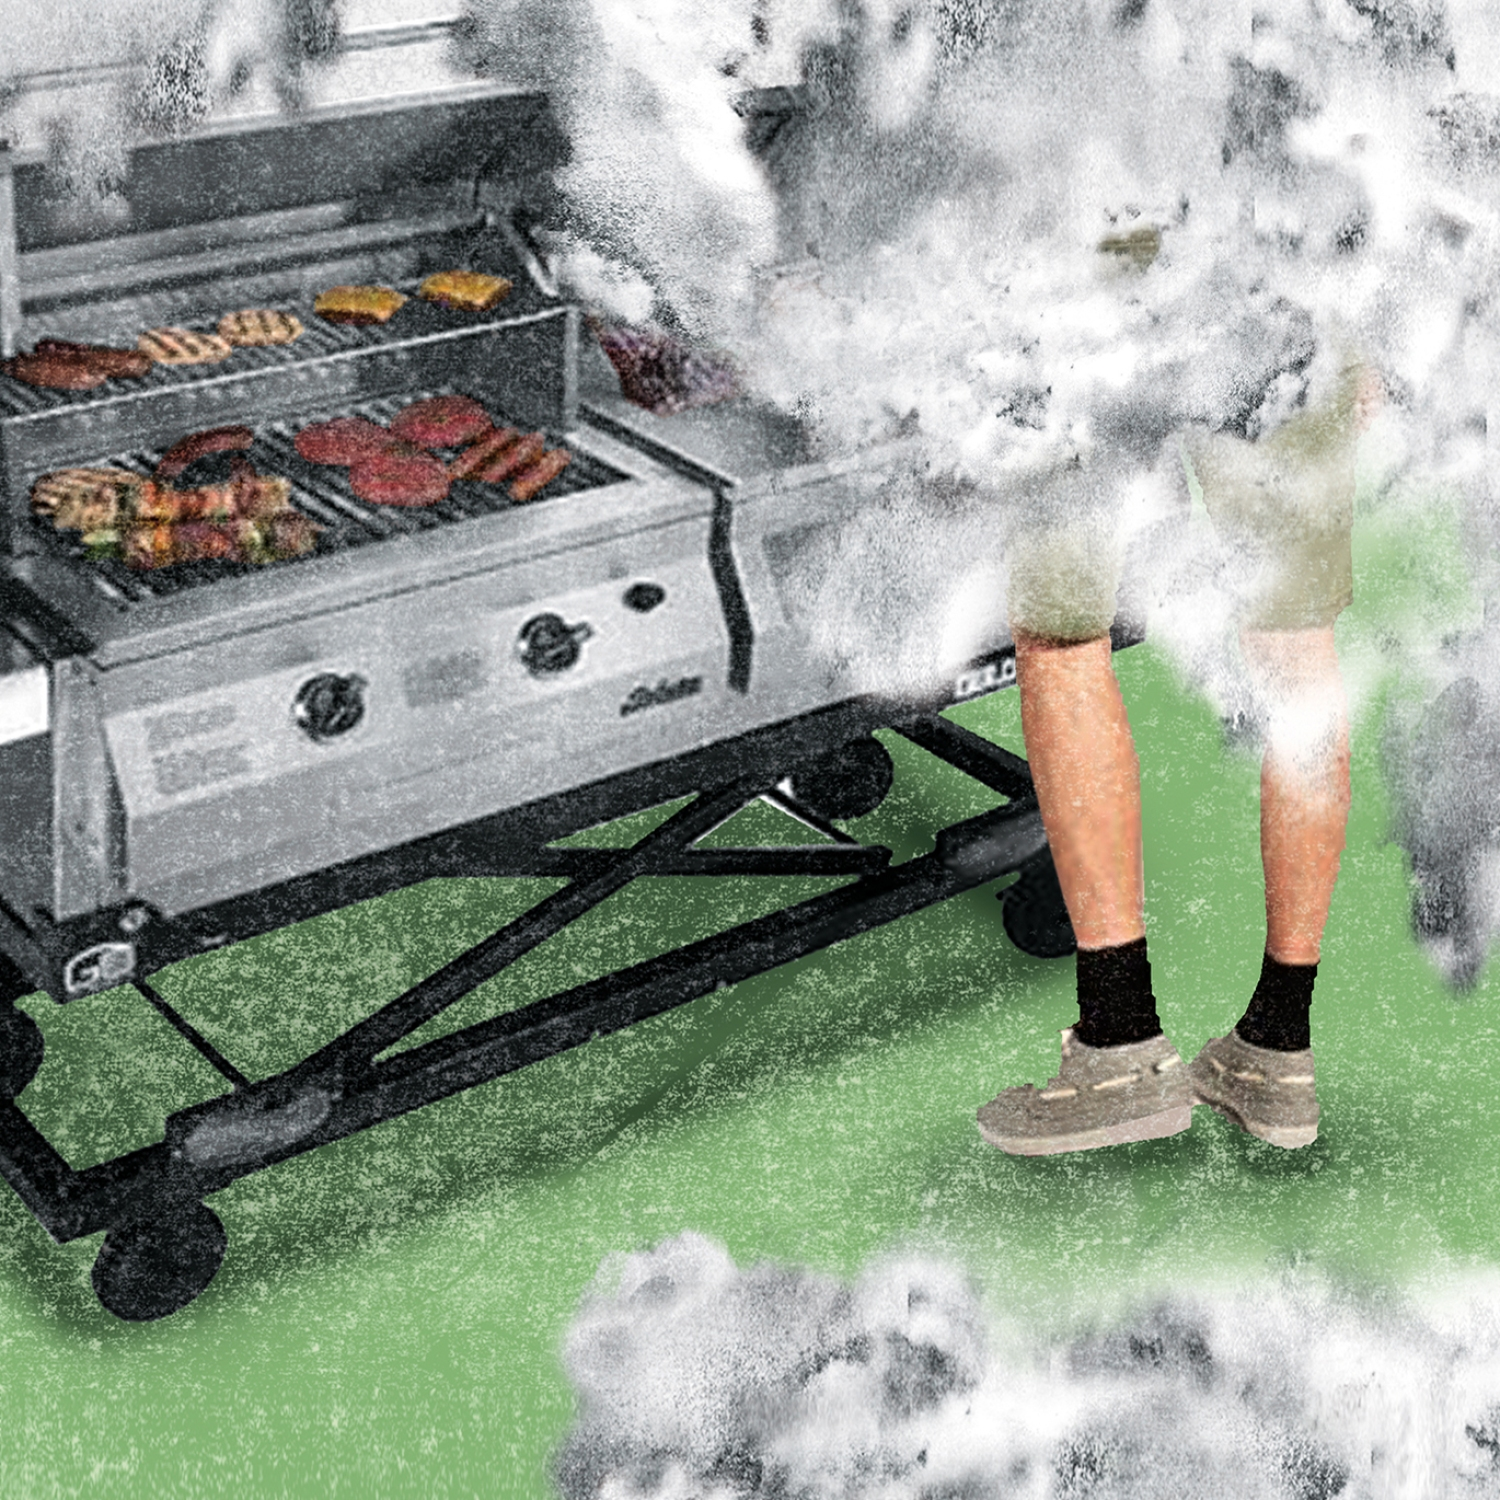 Smoke from a backyard grill